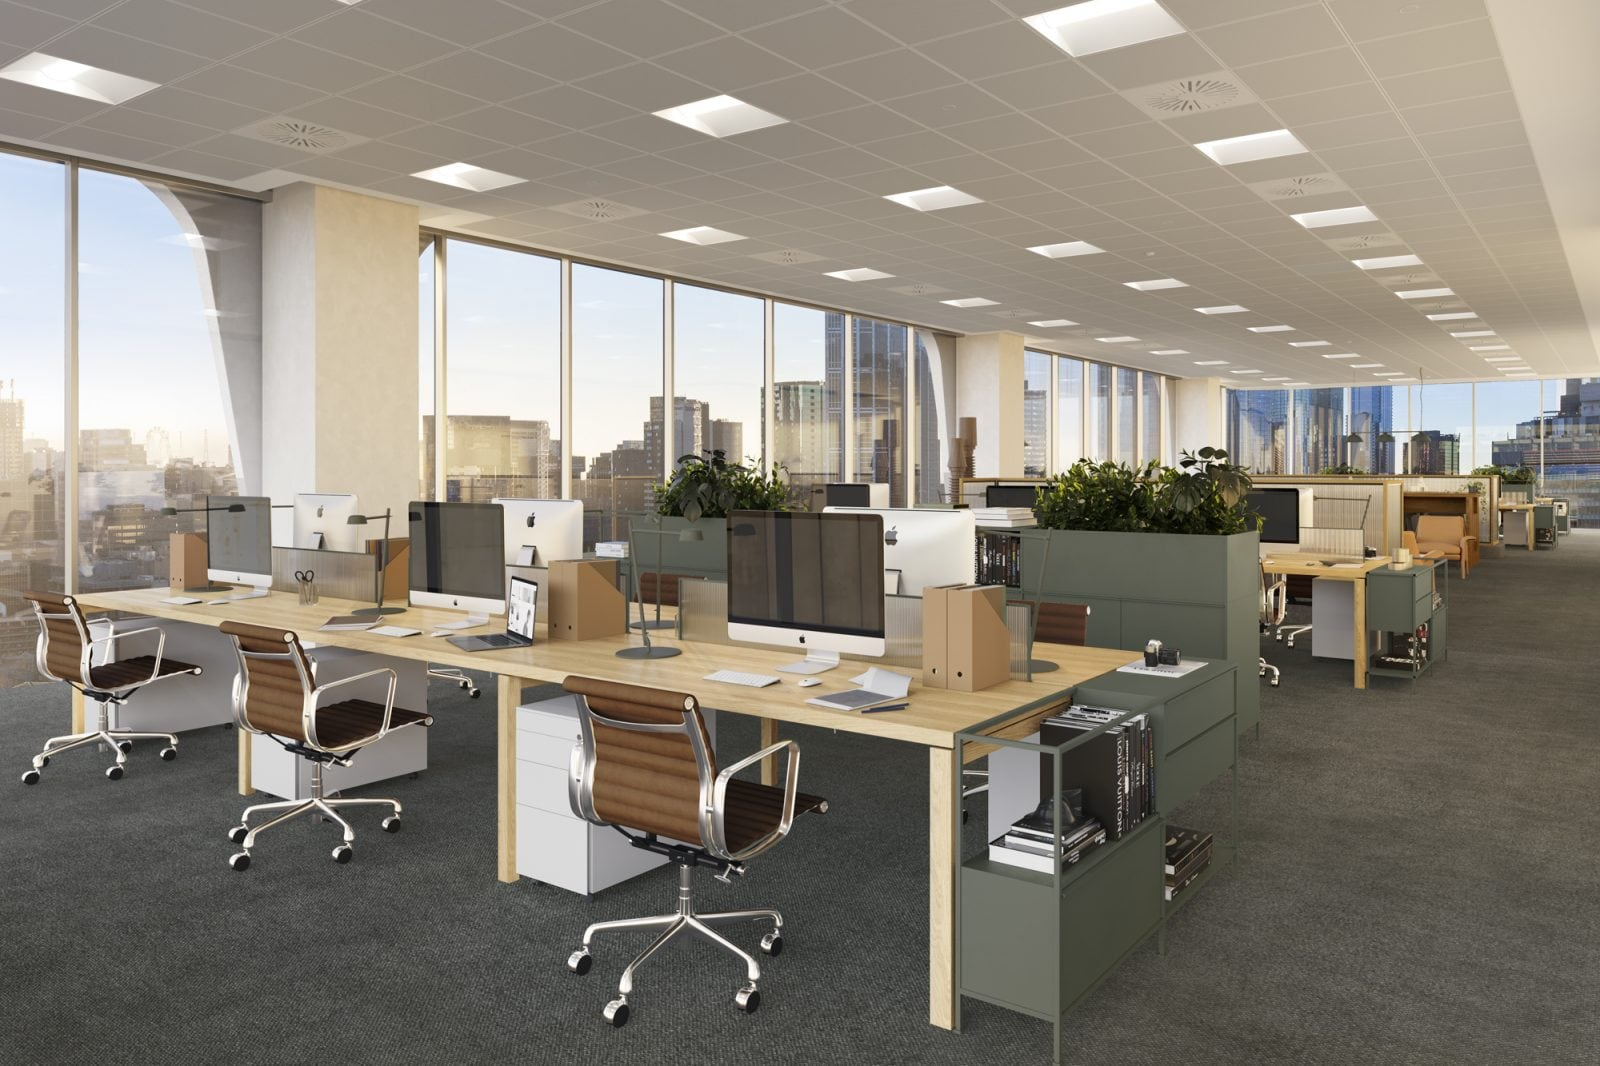 Artist's impression – Standard Office Interior